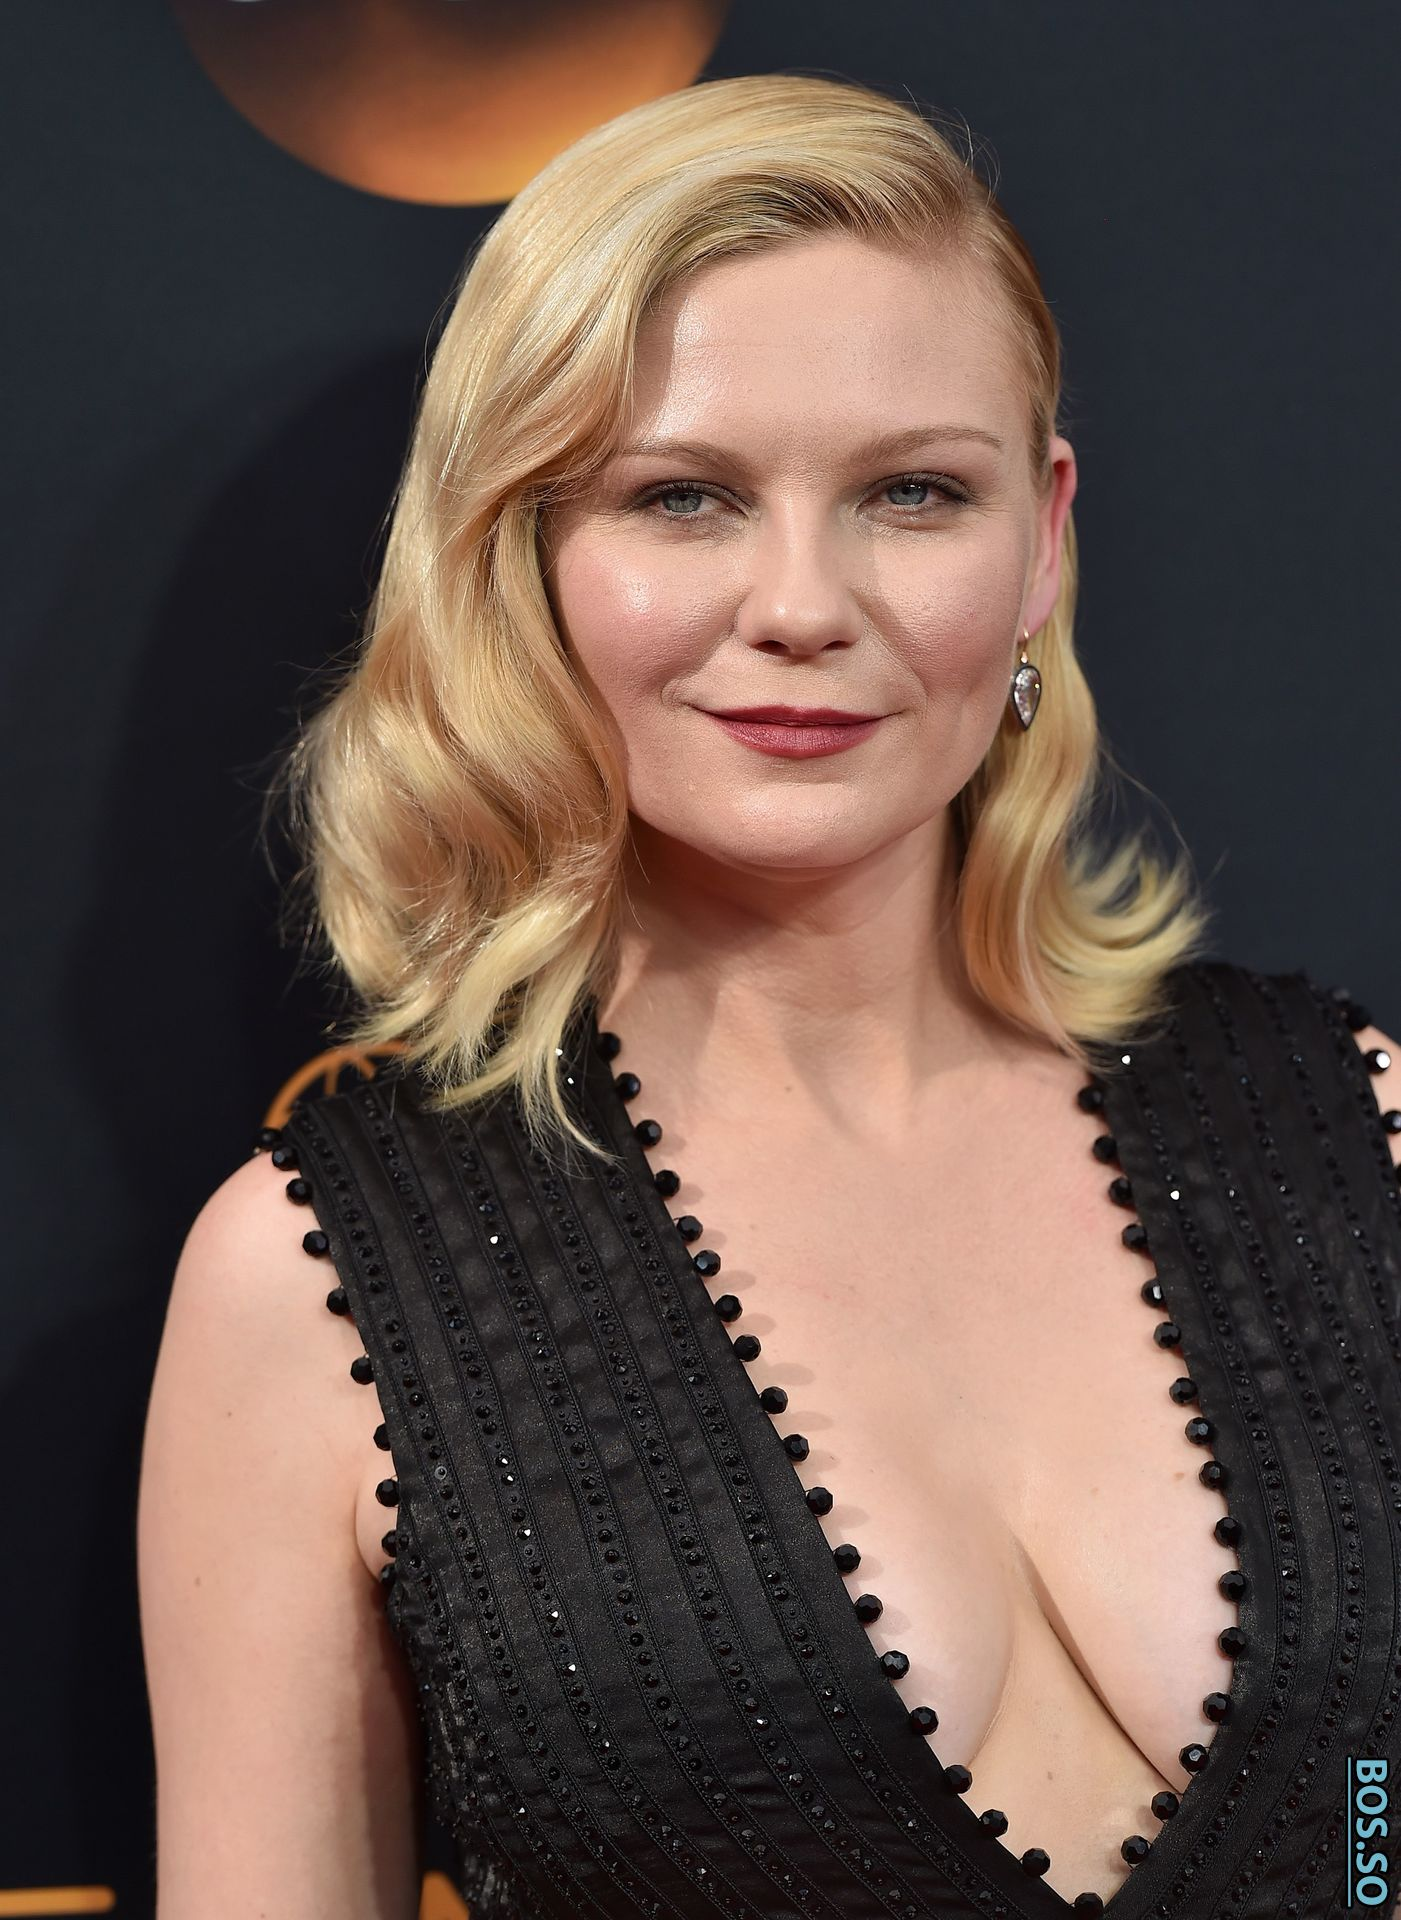 Kirsten Dunst Nude The Fappening - Page 8 - FappeningGram